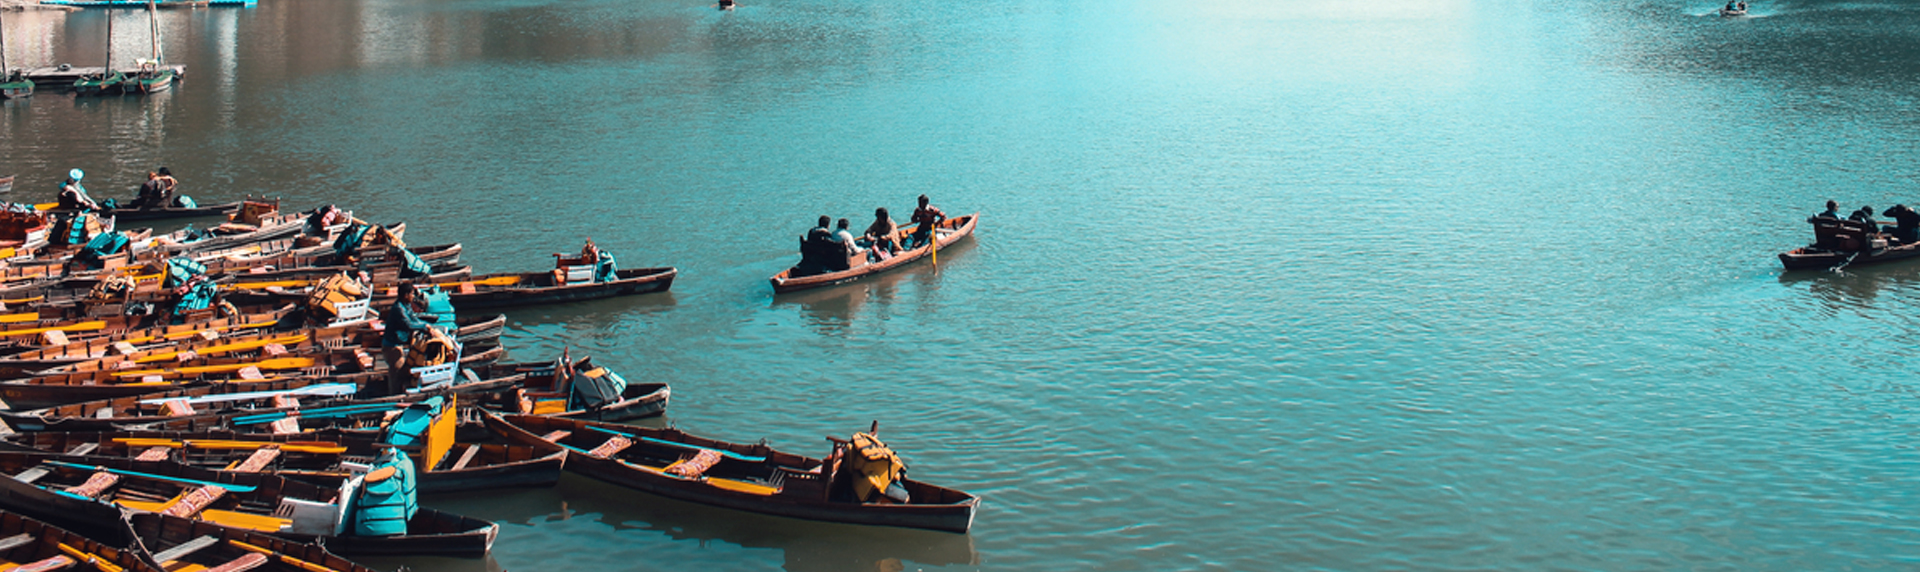 Boating in Nainital lake in Uttarakhand is one of the things to do in Nainital